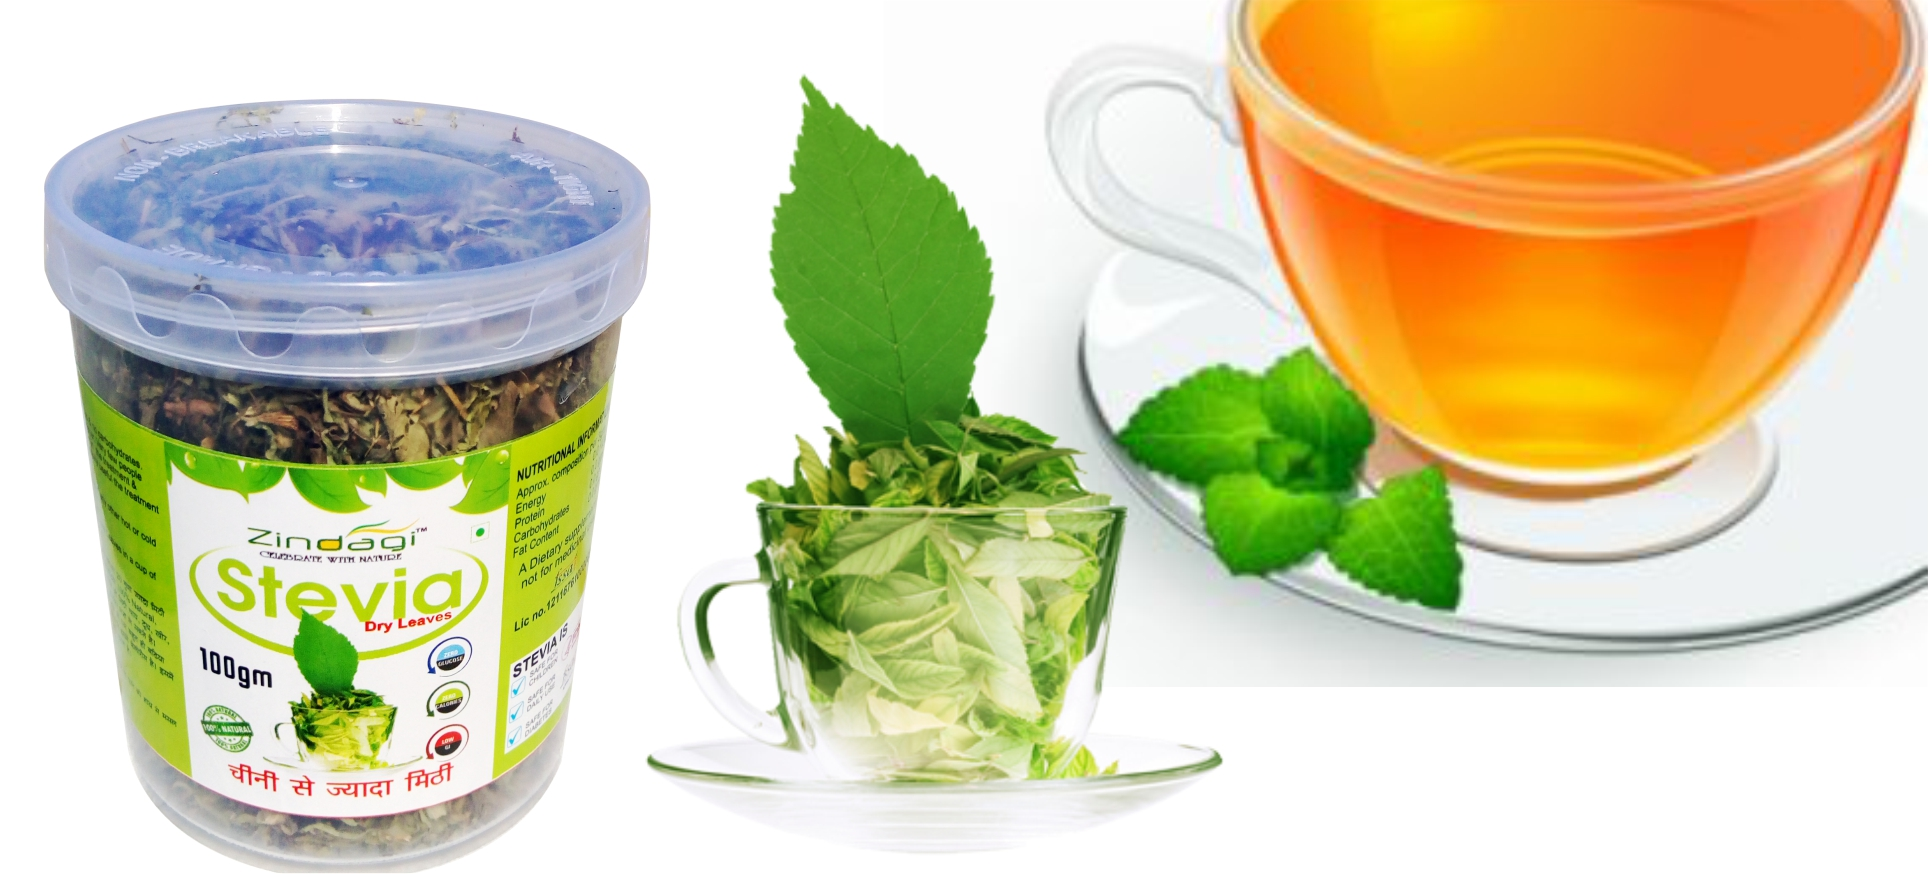 Stevia Extract Manufacturers In India Stevia Suppliers